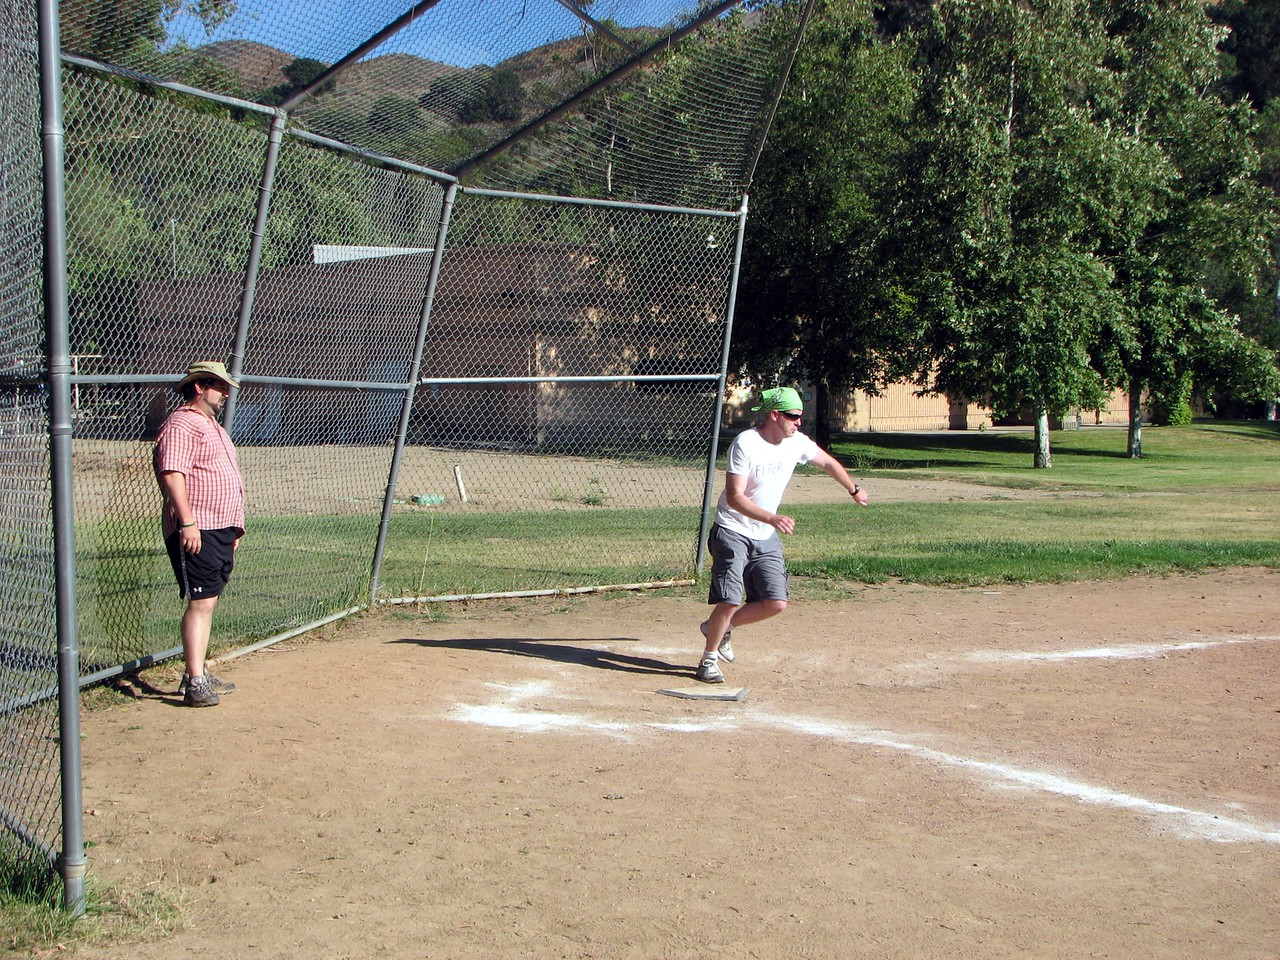 Joe (friend of the bride) at the plate for Team Fifer while Rabbi Spey (friend of the bride and groom) catches for Team Mandell